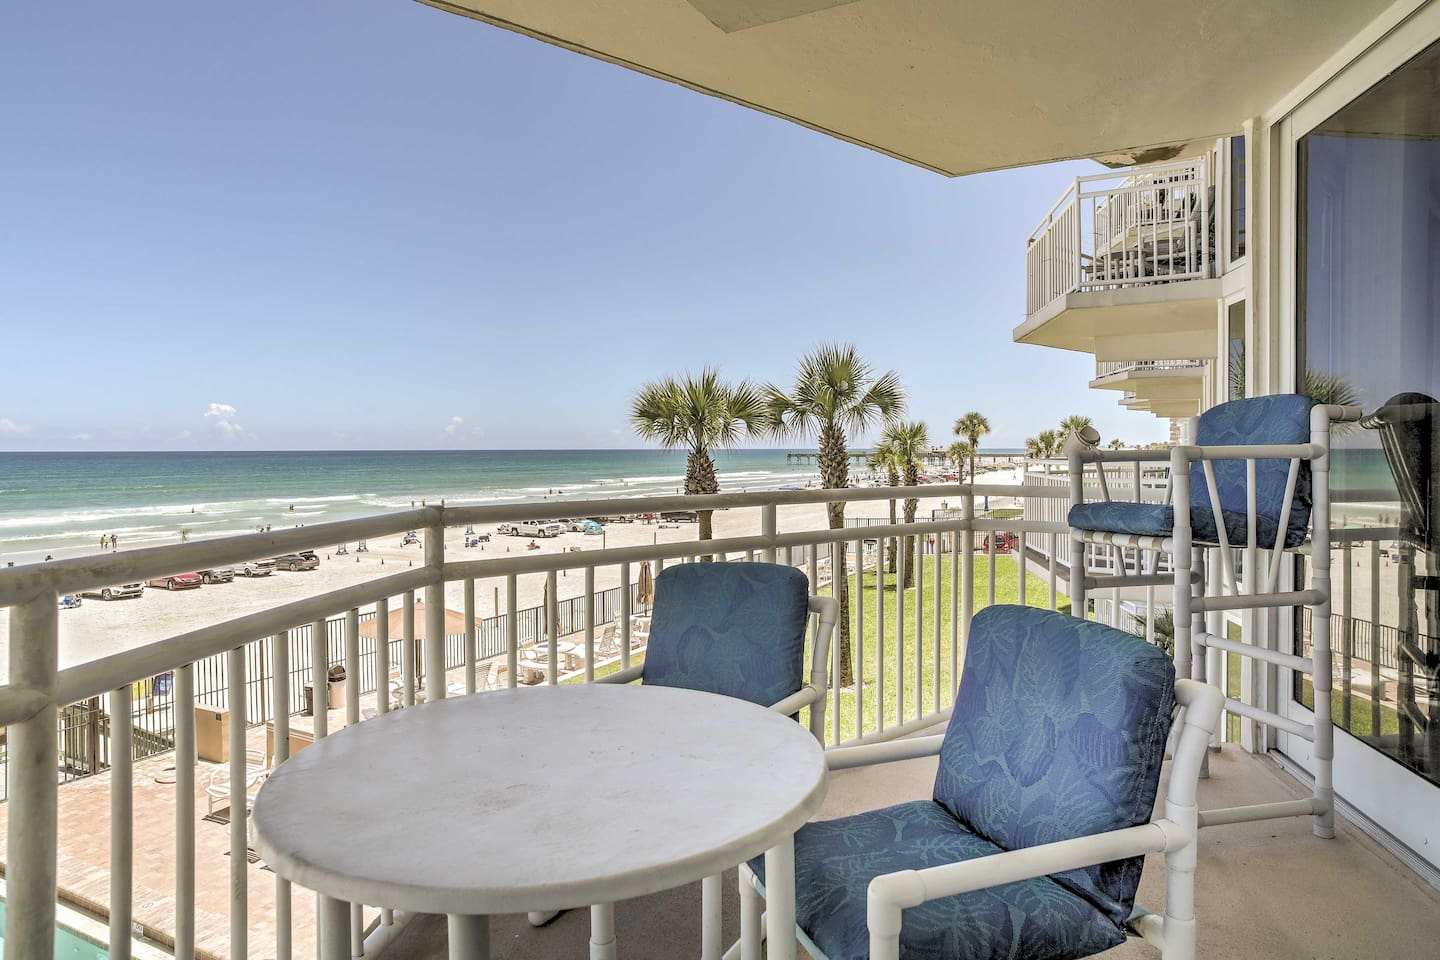 Enjoy gorgeous sunsets from the balcony during your stay in this condo.